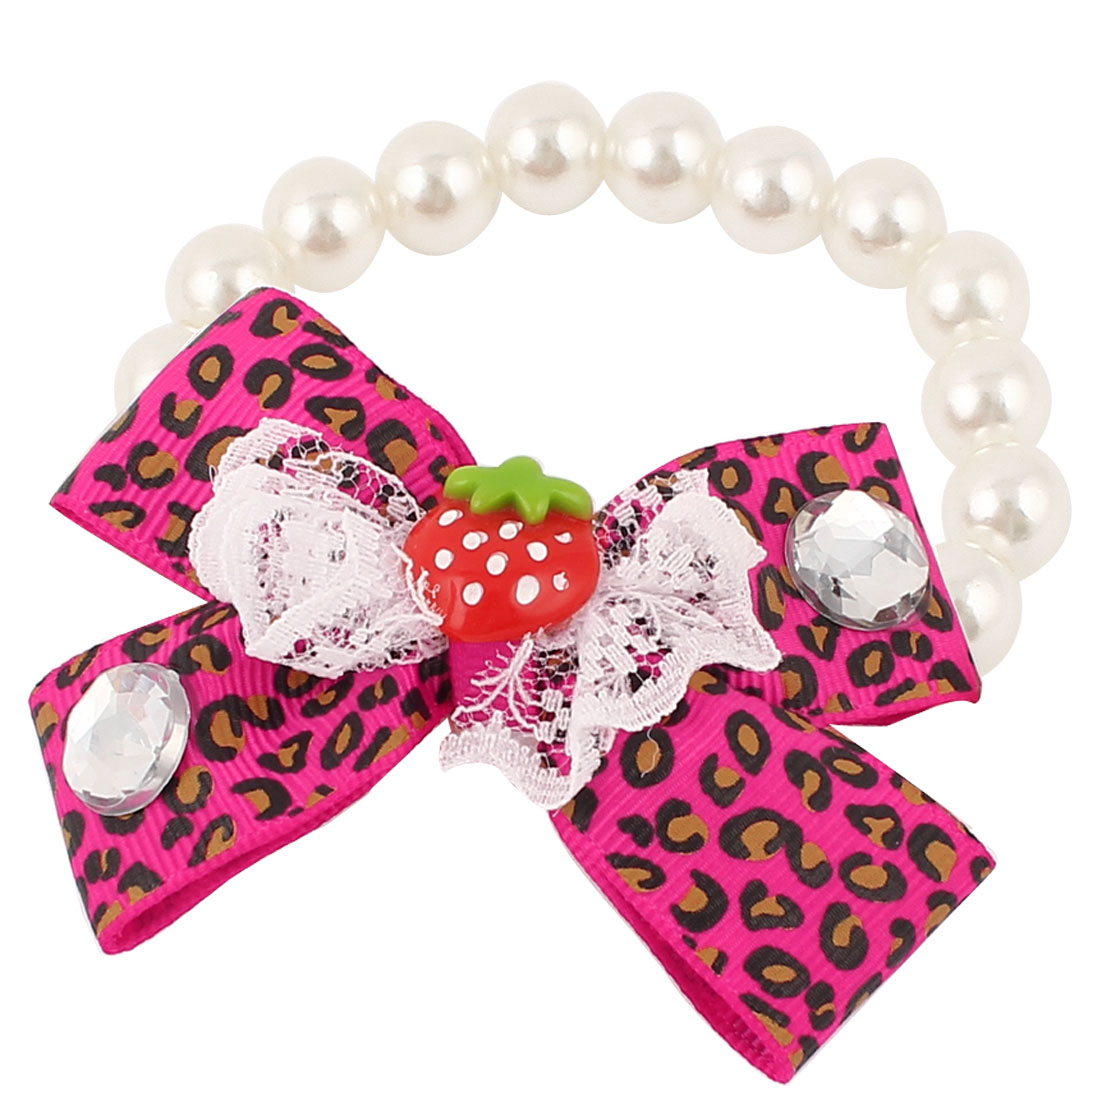 Bowtie Lace Faux Crystal Accent Pet Dog Plastic Beads Pearls Collar Necklace White Fuchsia XS